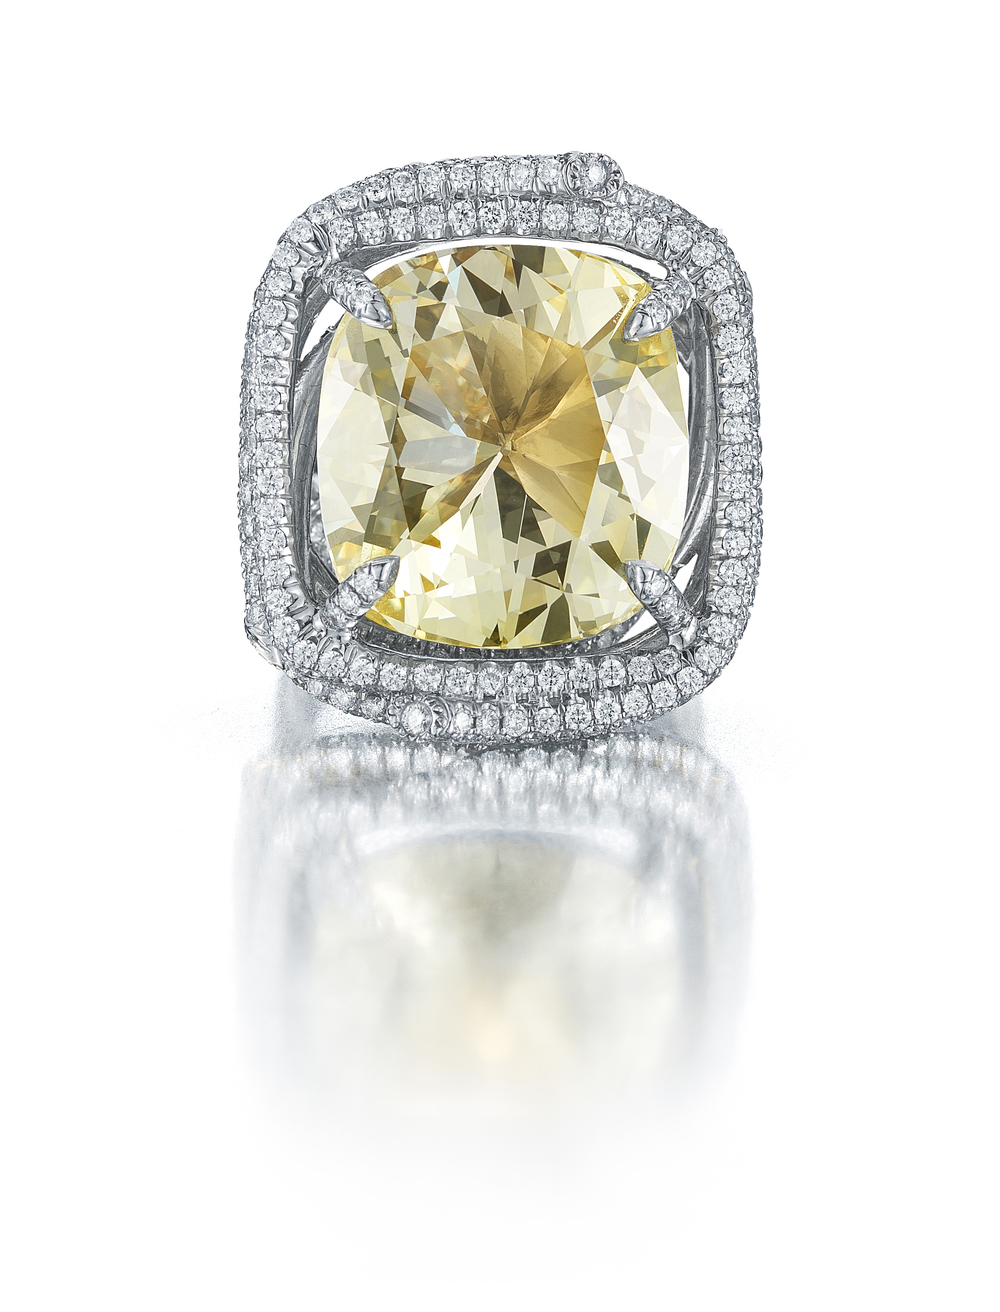 2ct Yellow Diamond engagement ring